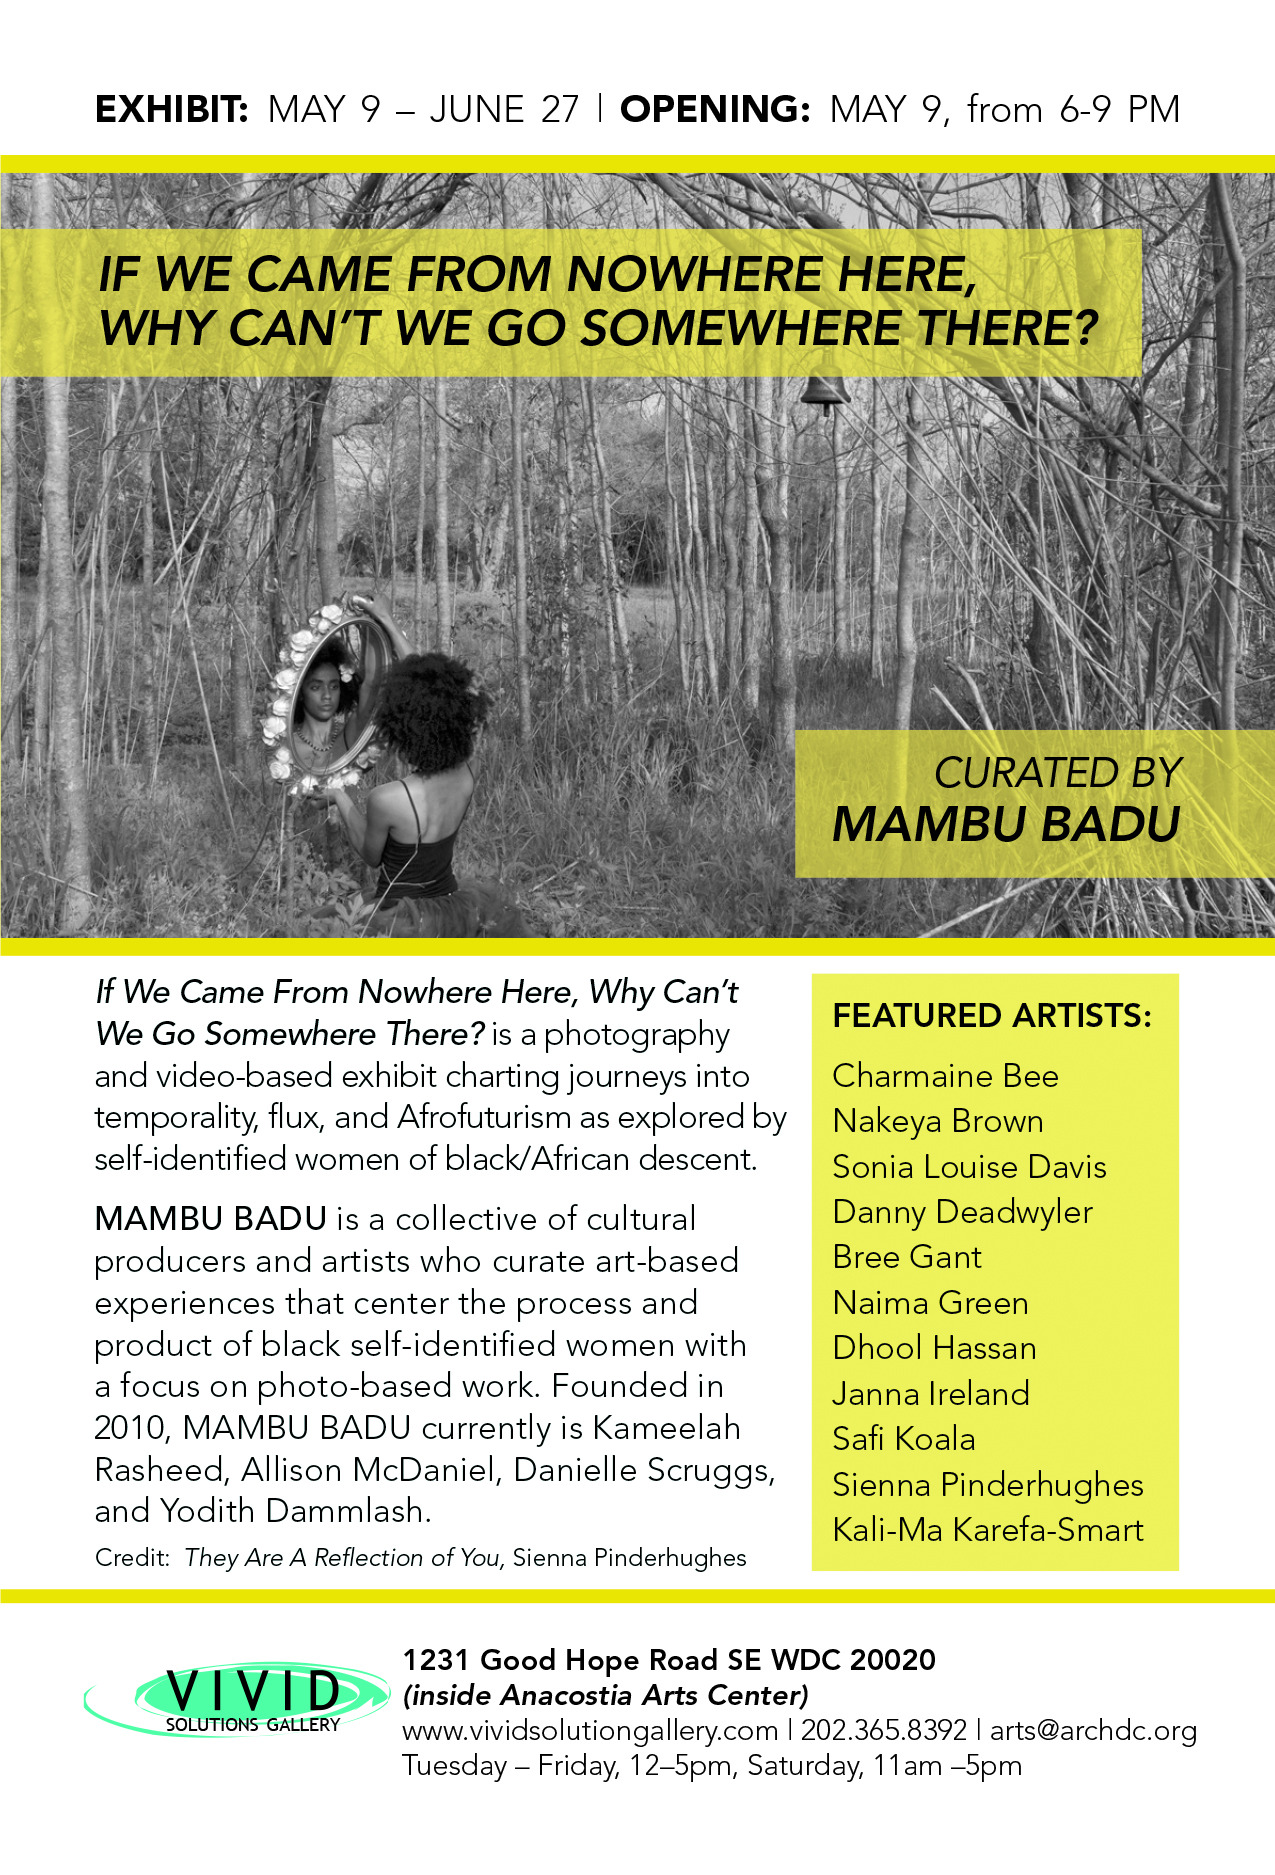 """mambubadu:  Our first show opens this Friday in Washington, DC! ### """"If We Came From Nowhere Here, Why Can't We Go Somewhere There?"""" is a photography and video-based exhibit charting journeys into temporality, flux, and Afrofuturism as explored by self-identified women of Black/African descent. Show will feature works by the following: Naima Green, Dhool Hassan, Danny Deadwyler, Sienna Pinderhughes, Janna Ireland, Charmaine Bee, Bree Gant, Nakeya Brown, Kali-Ma Nazarene, Sonia Louise Davis & Ivan Forde MAMBU BADU 